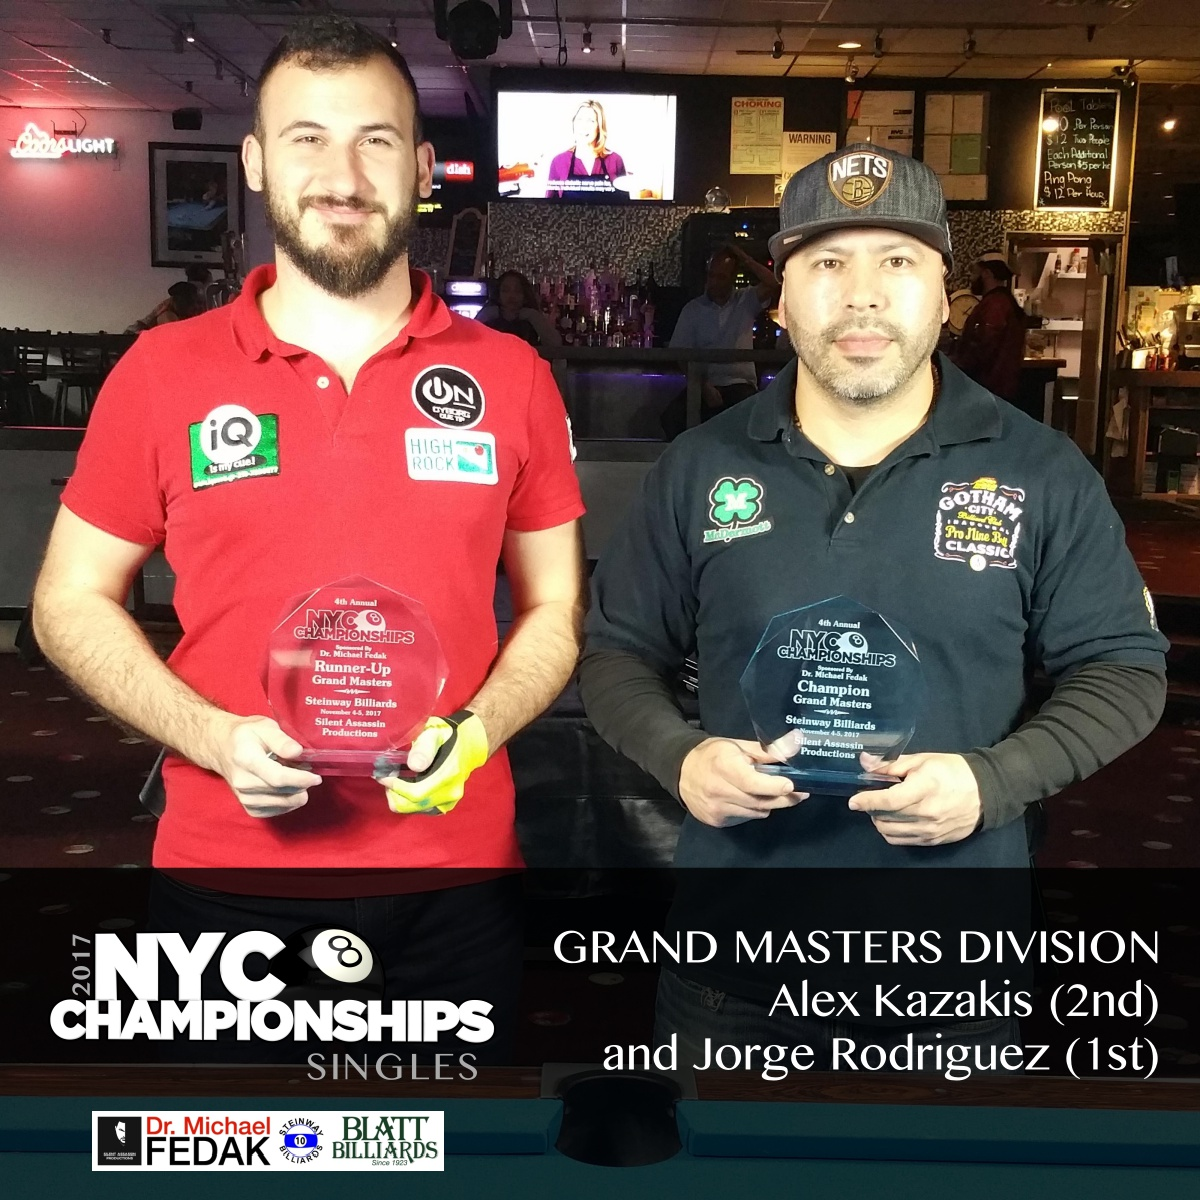 Grand Masters L-R 1st Tony Robles 2nd Jonathan Smith